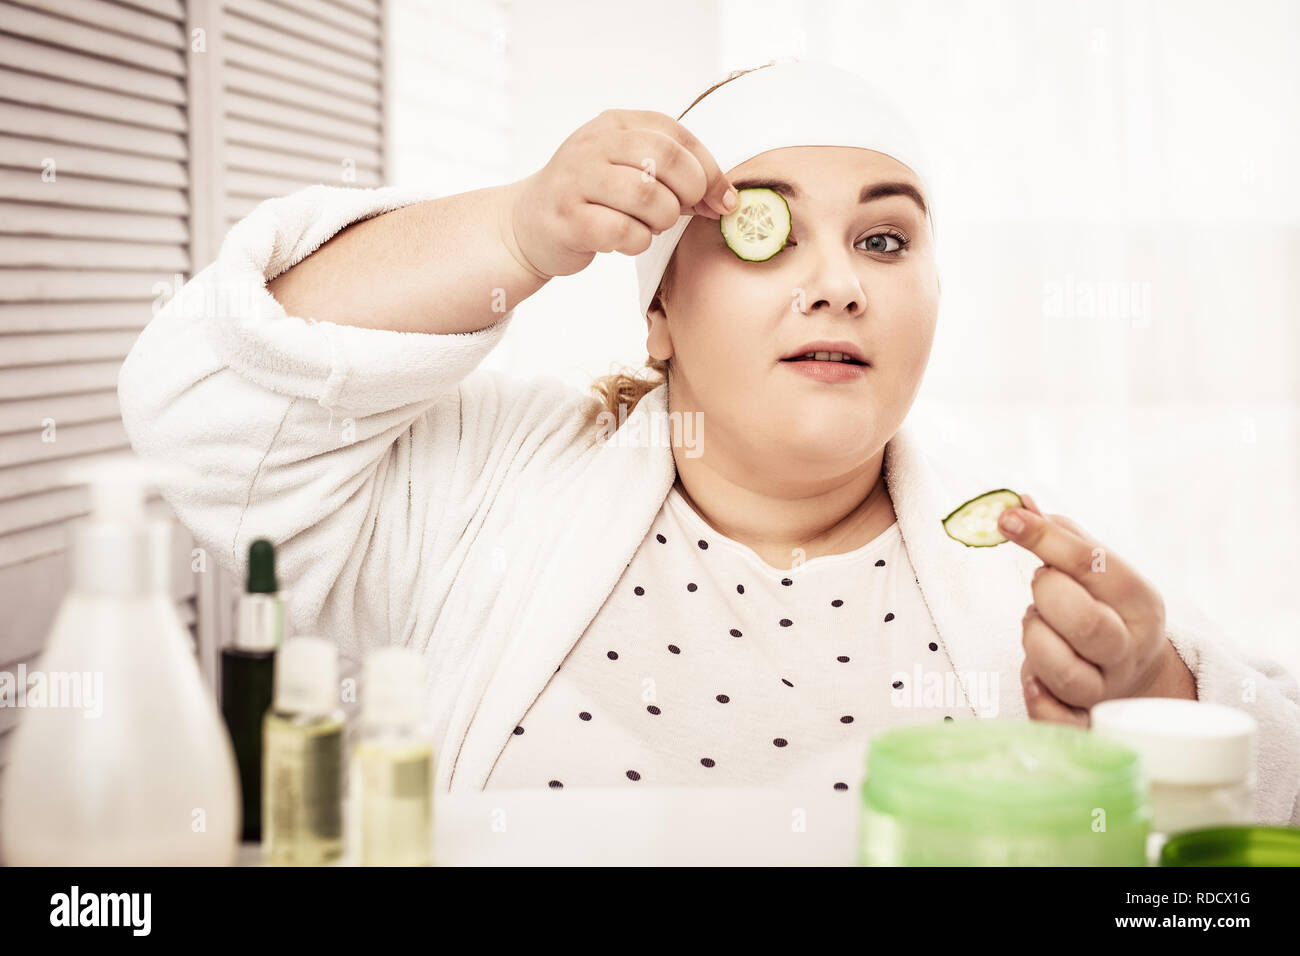 Focused big woman putting cucumbers on her eyelids - Stock Image